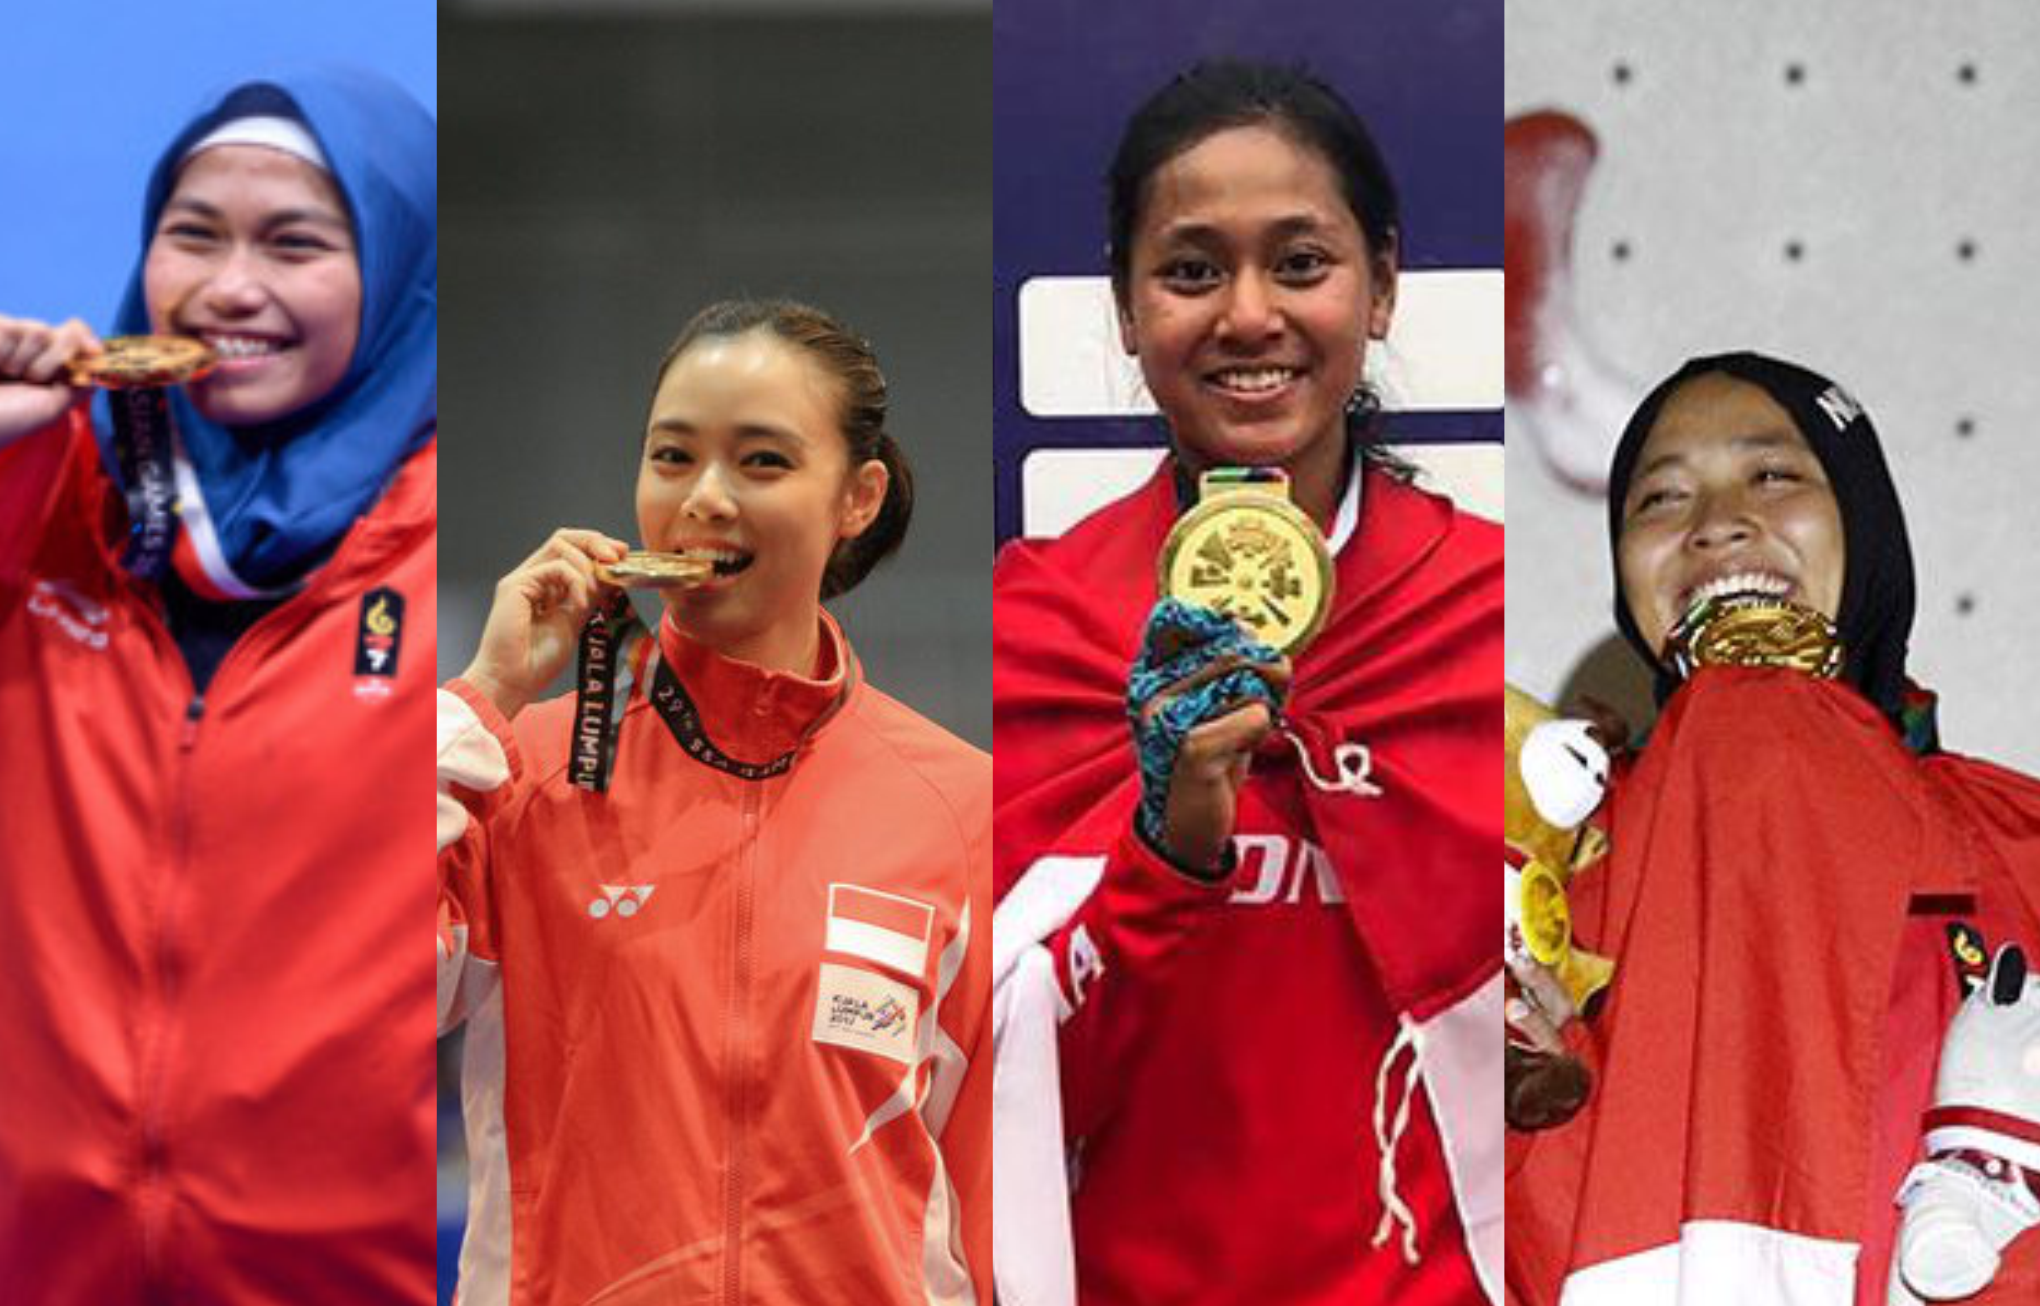 Srikandi Peraih Medali Emas Indonesia di Asian Games 2018 (1)